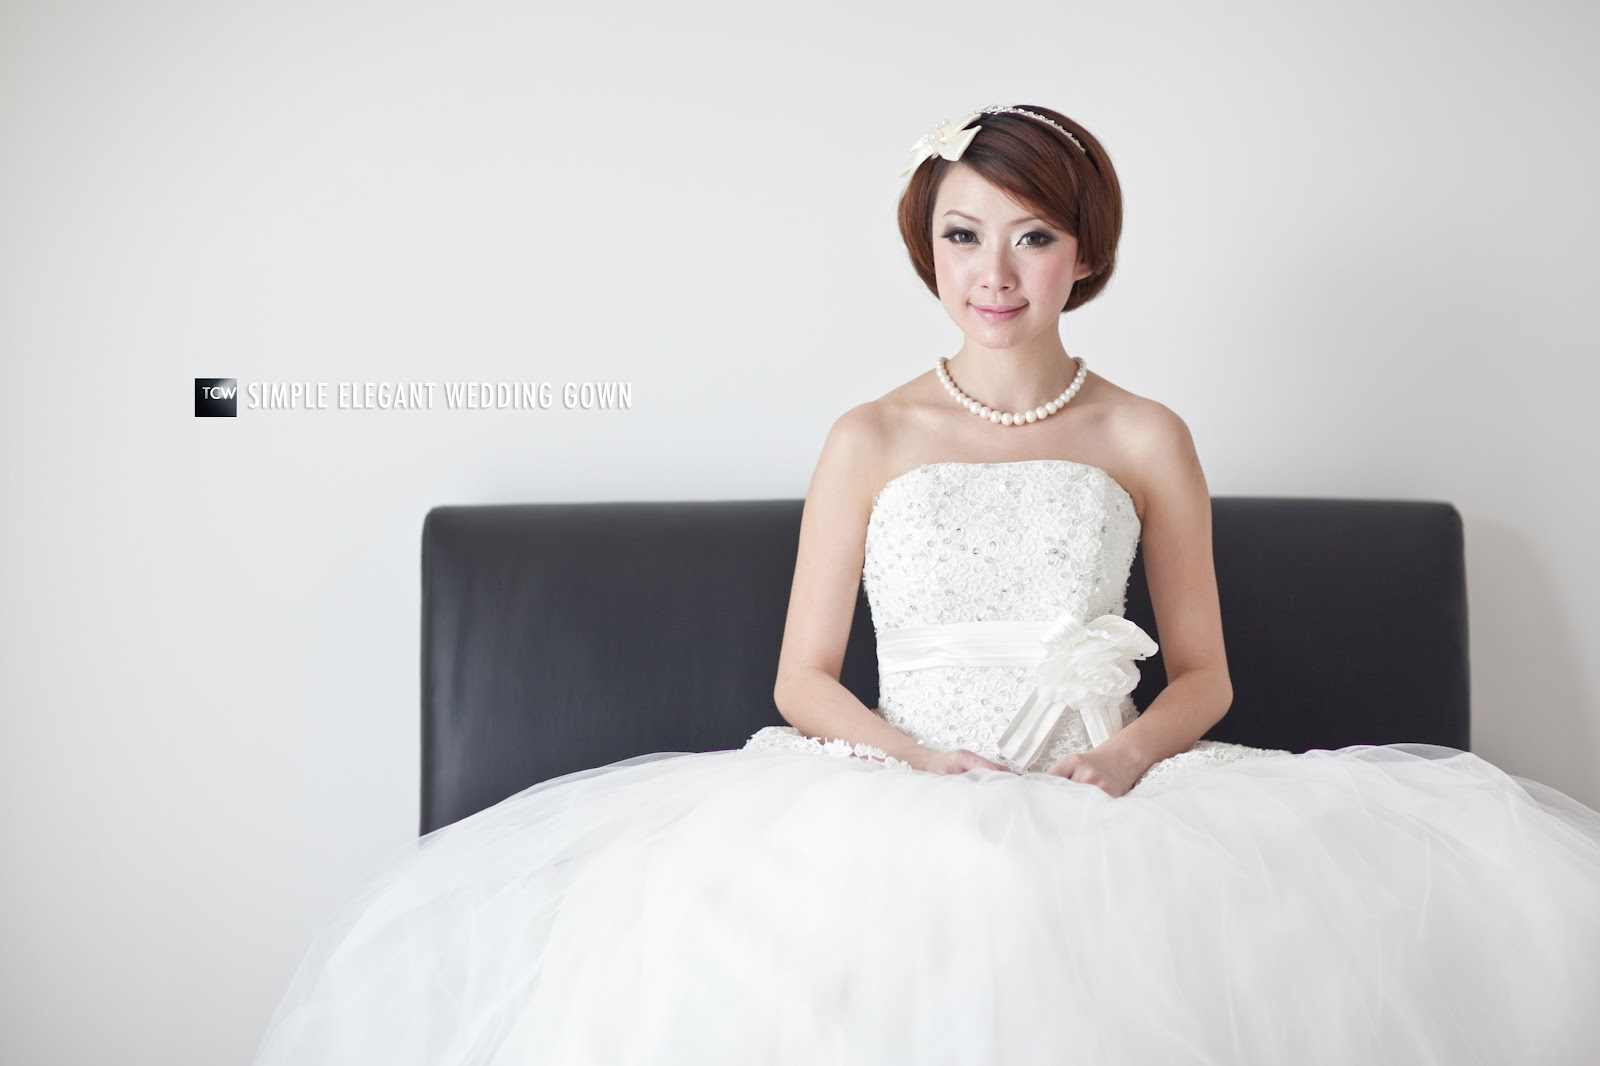 Simple Elegant Wedding Gowns By TCWPHOTOGRAPHY - TCWPHOTOGRAPHY